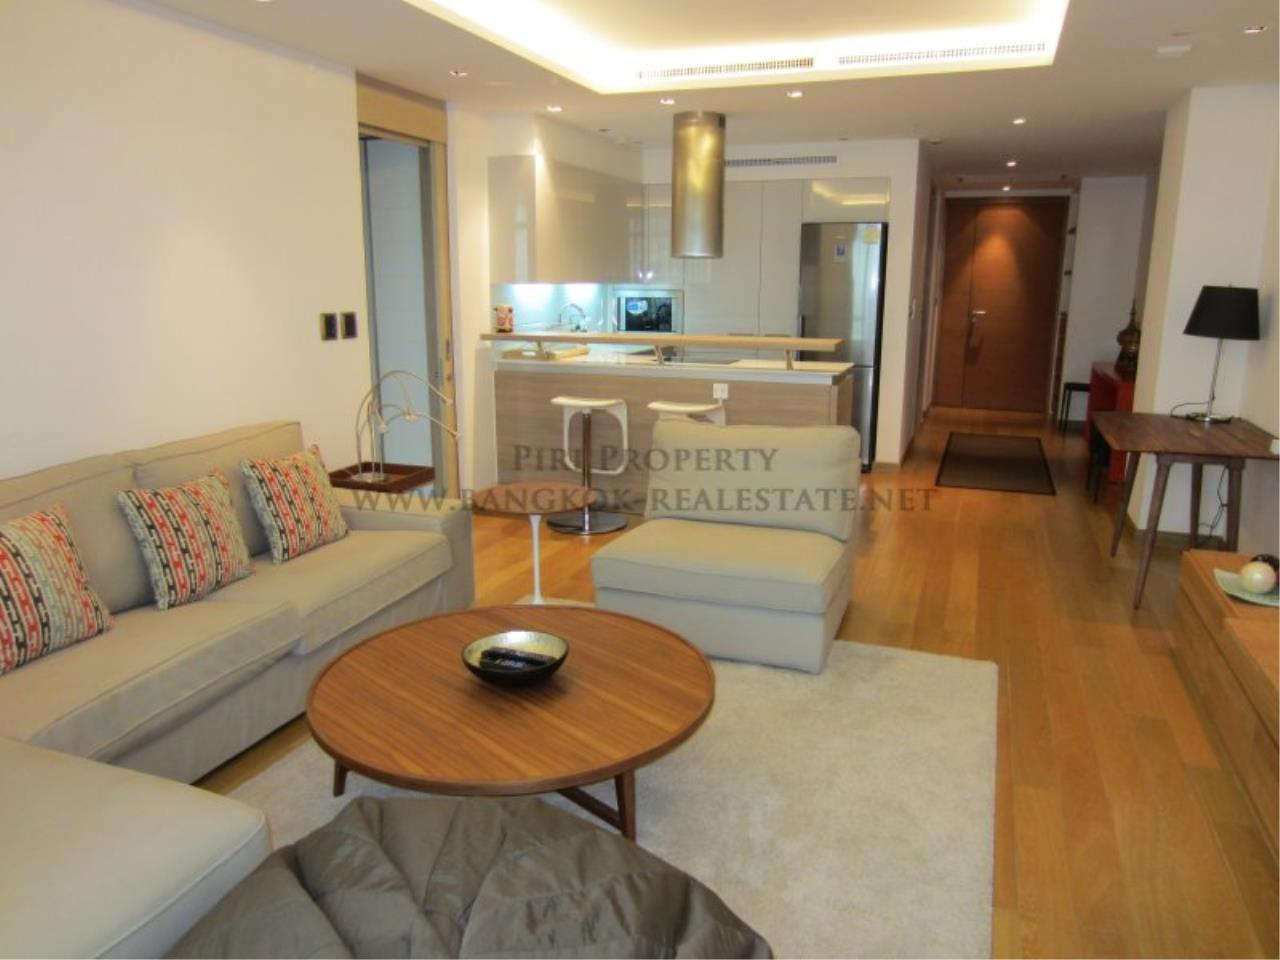 Piri Property Agency's Le Monaco - Spacious 1 Bedroom Condo for rent in Ari - Luxury Living in Ari 1